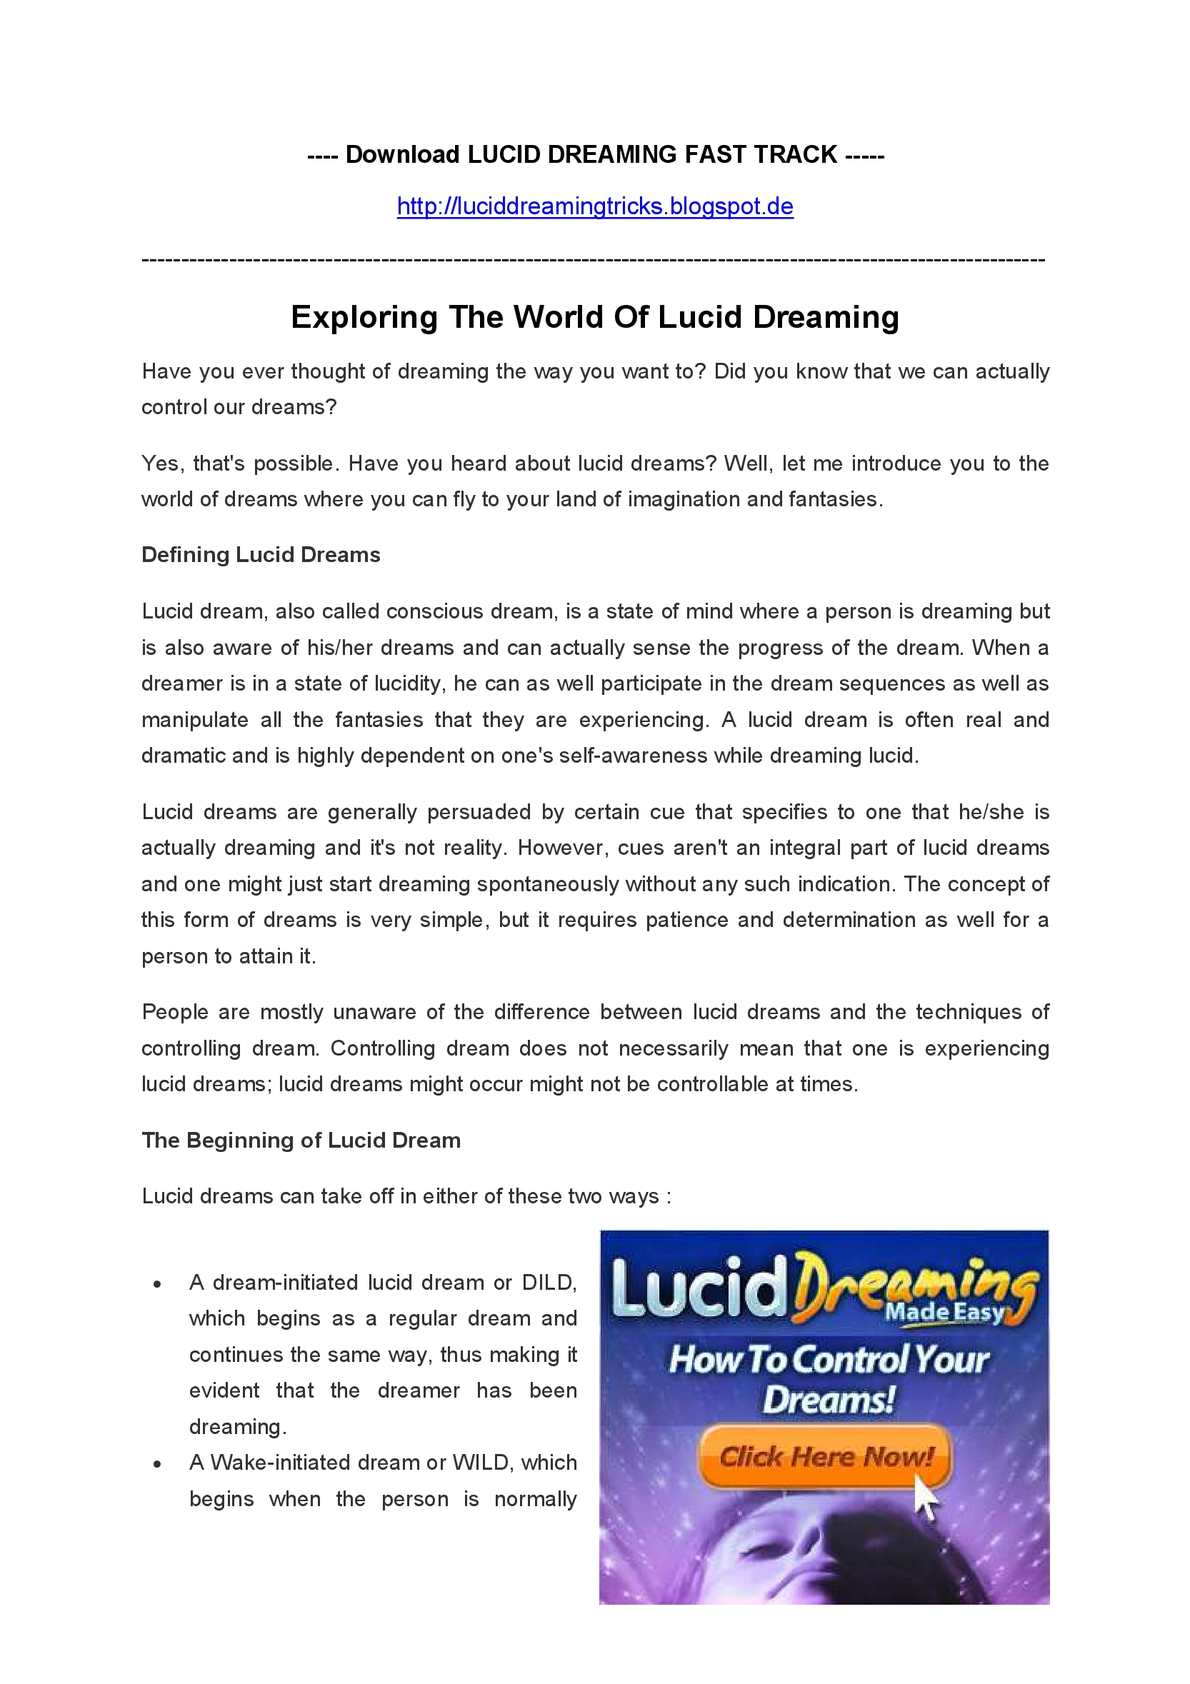 Calaméo - Exploring The World Of Lucid Dreaming